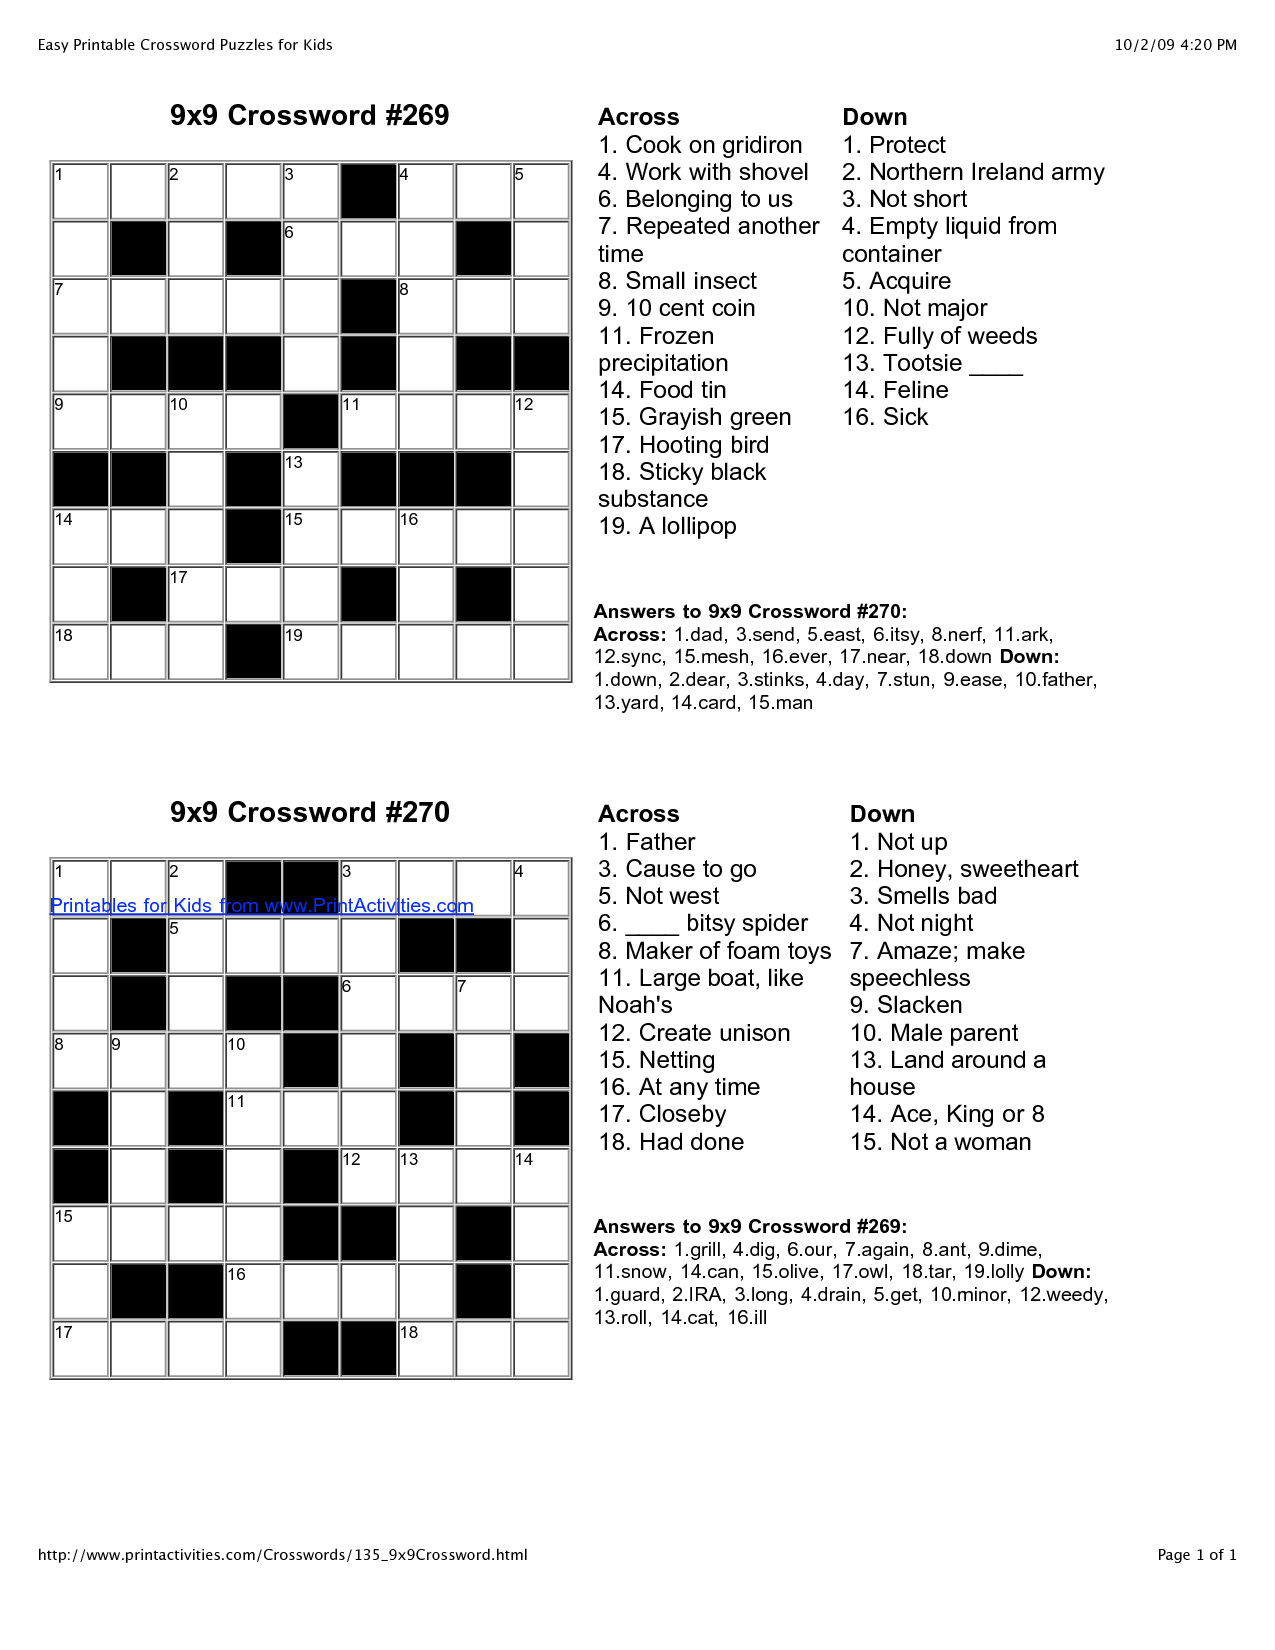 Easy Crossword Puzzles | I'm Going To Be An Slp! | Kids Crossword - Printable Crossword Solutions